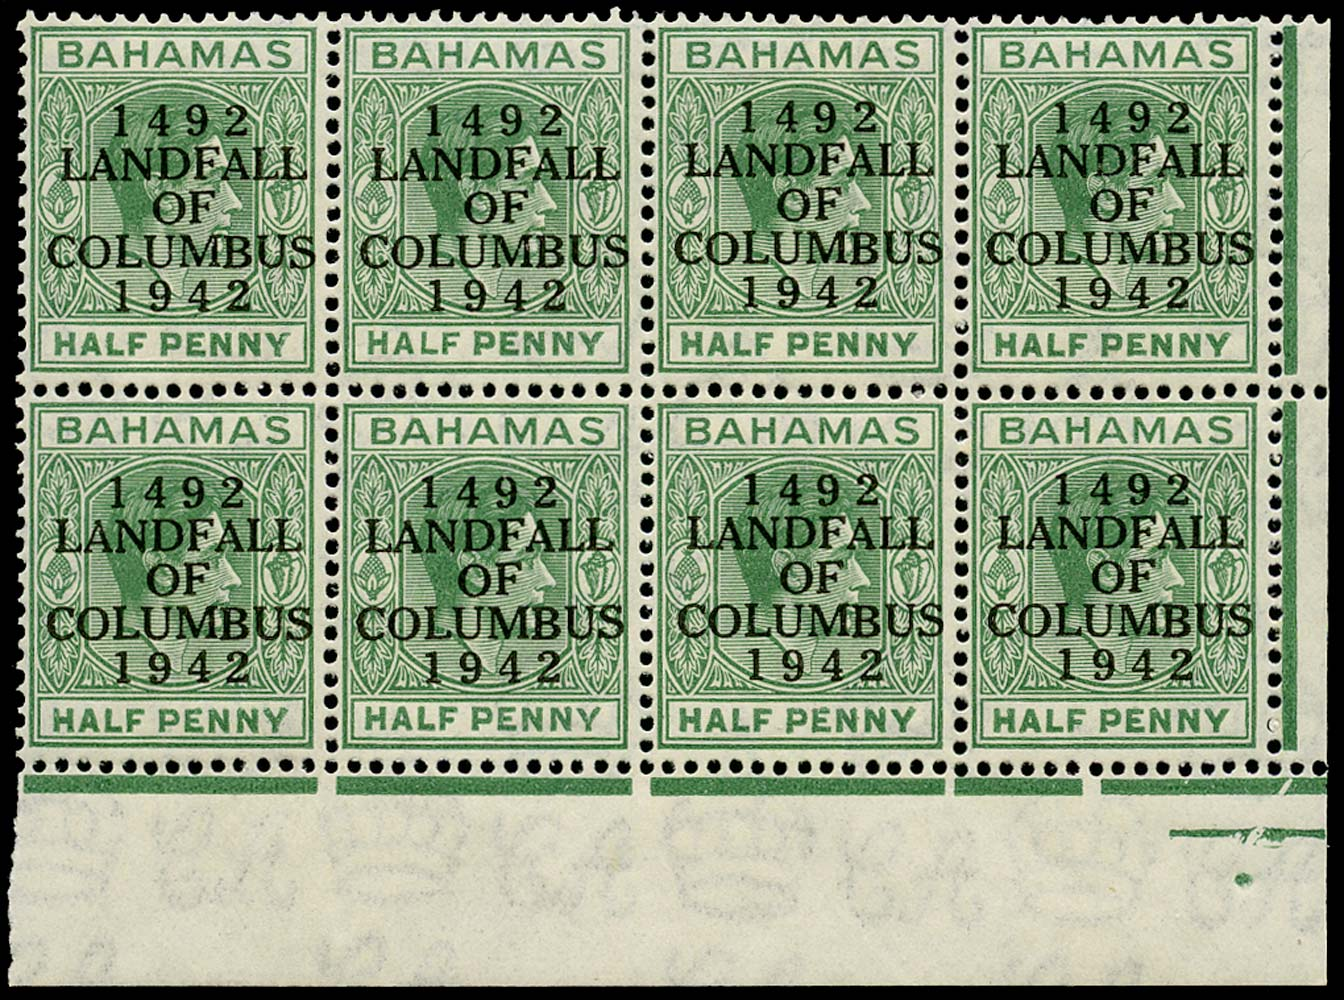 BAHAMAS 1942  SG162a Mint Landfall ½d bluish green Elongated E unmounted